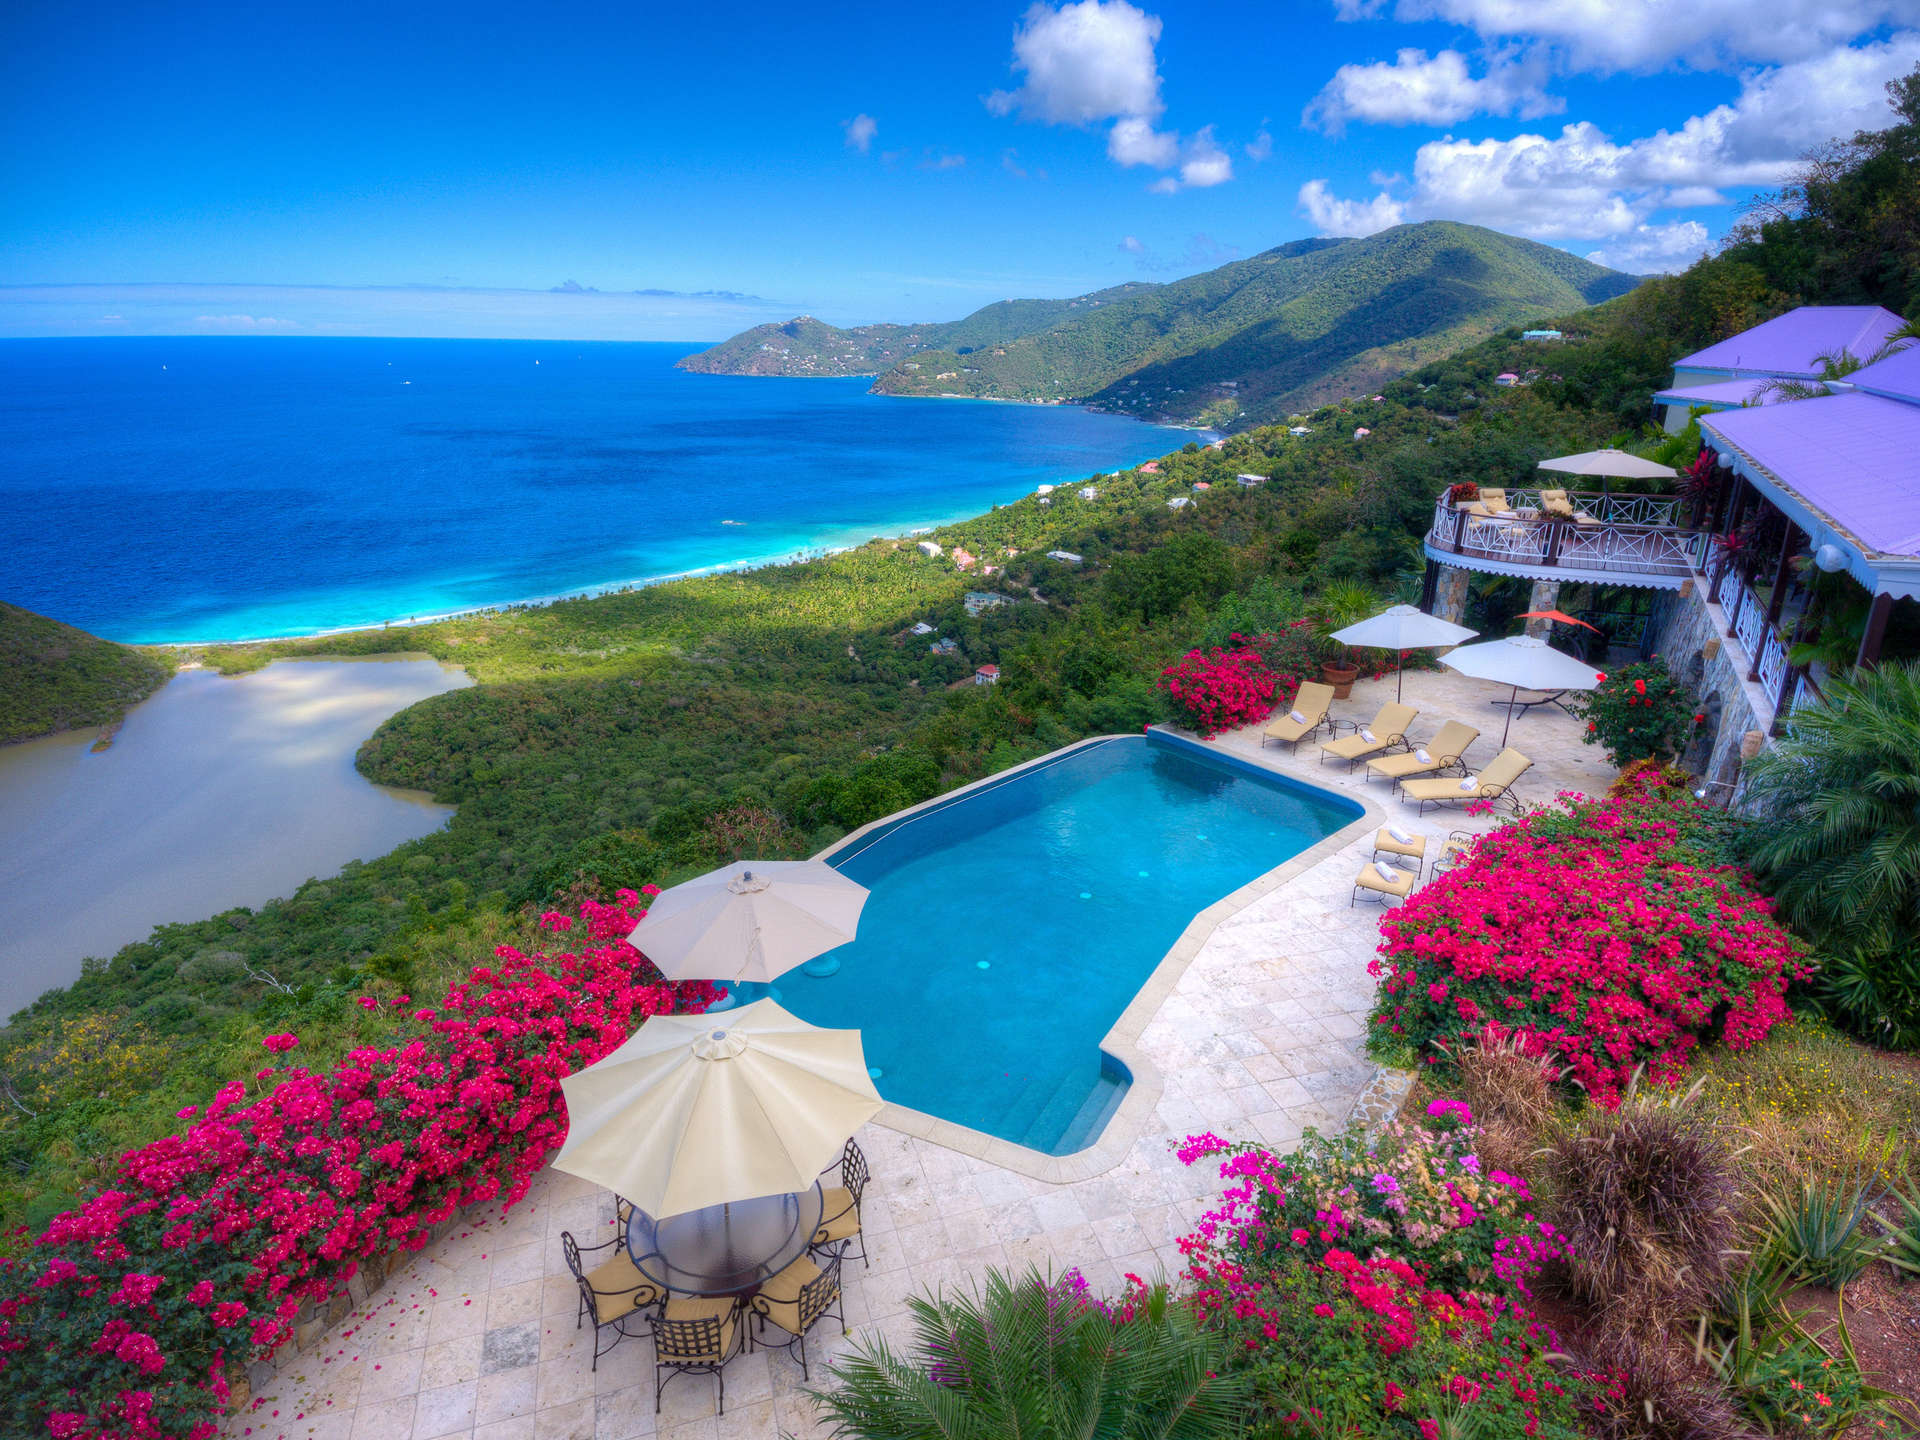 Luxury villa rentals caribbean - British virgin islands - Tortola - Belmont  - St Bernard's Hill House - Image 1/28